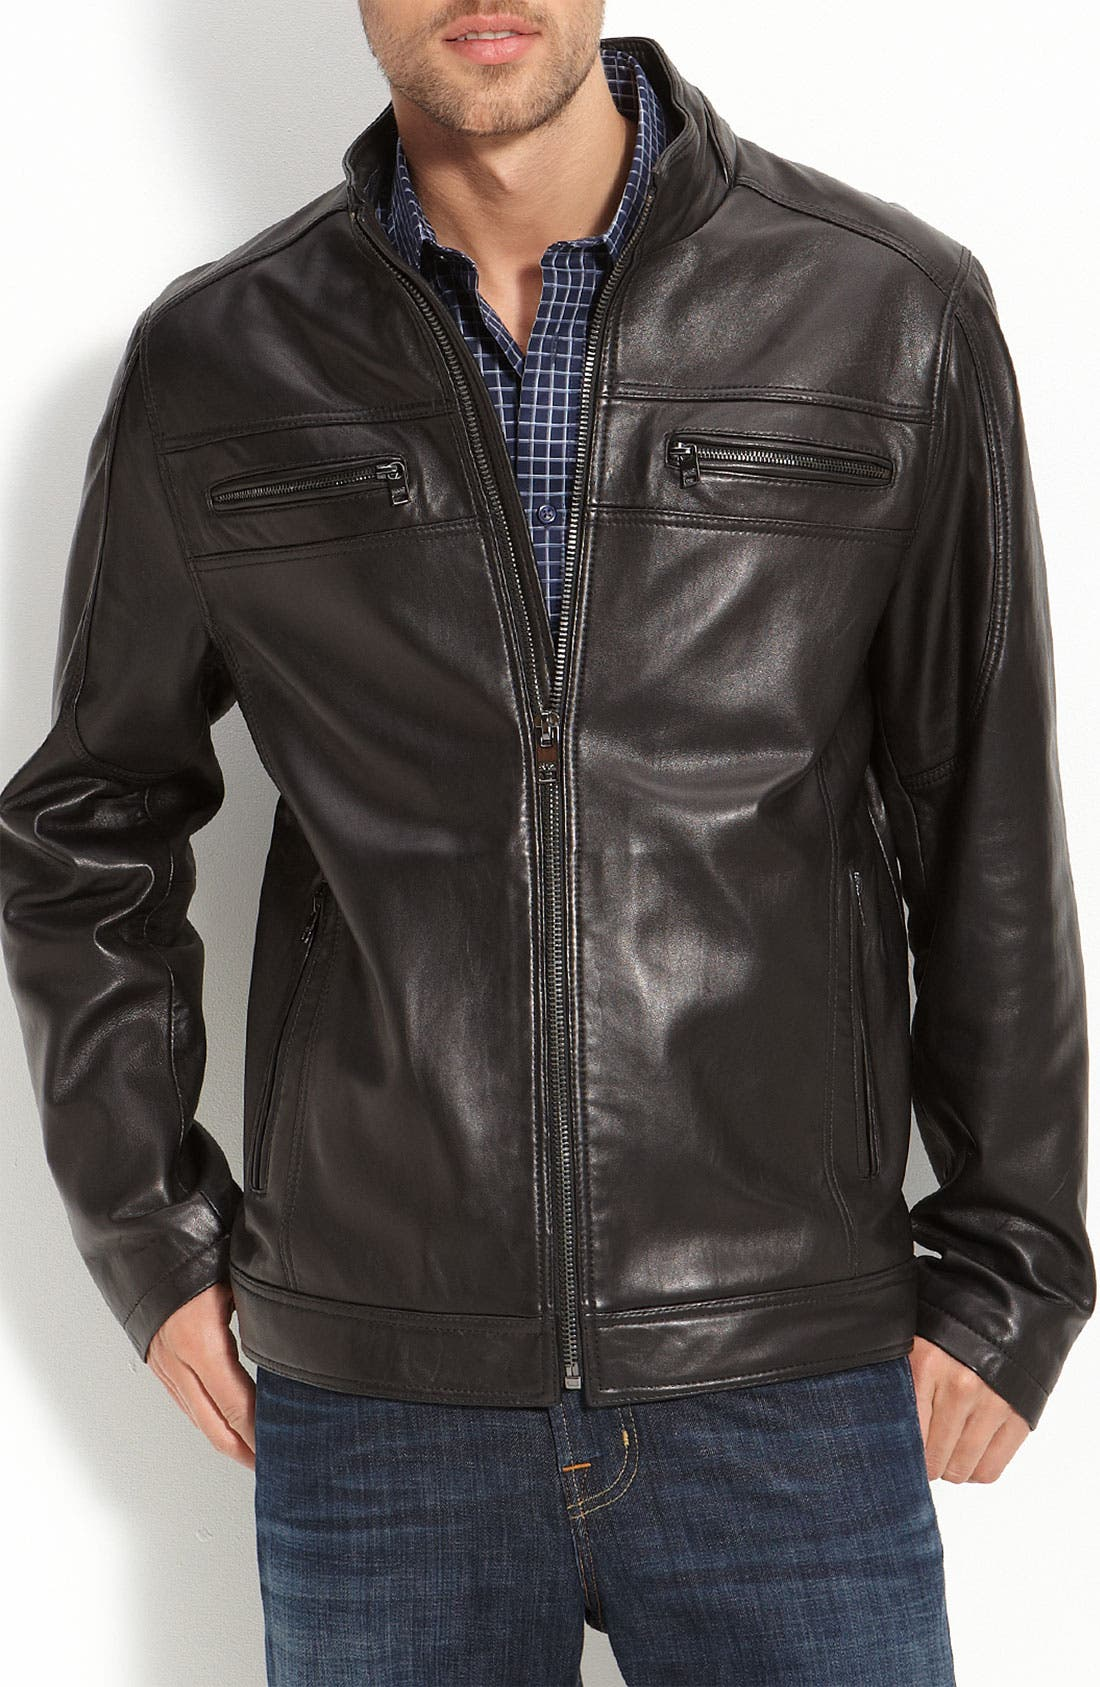 Main Image - Marc New York 'Jackson' Leather Jacket